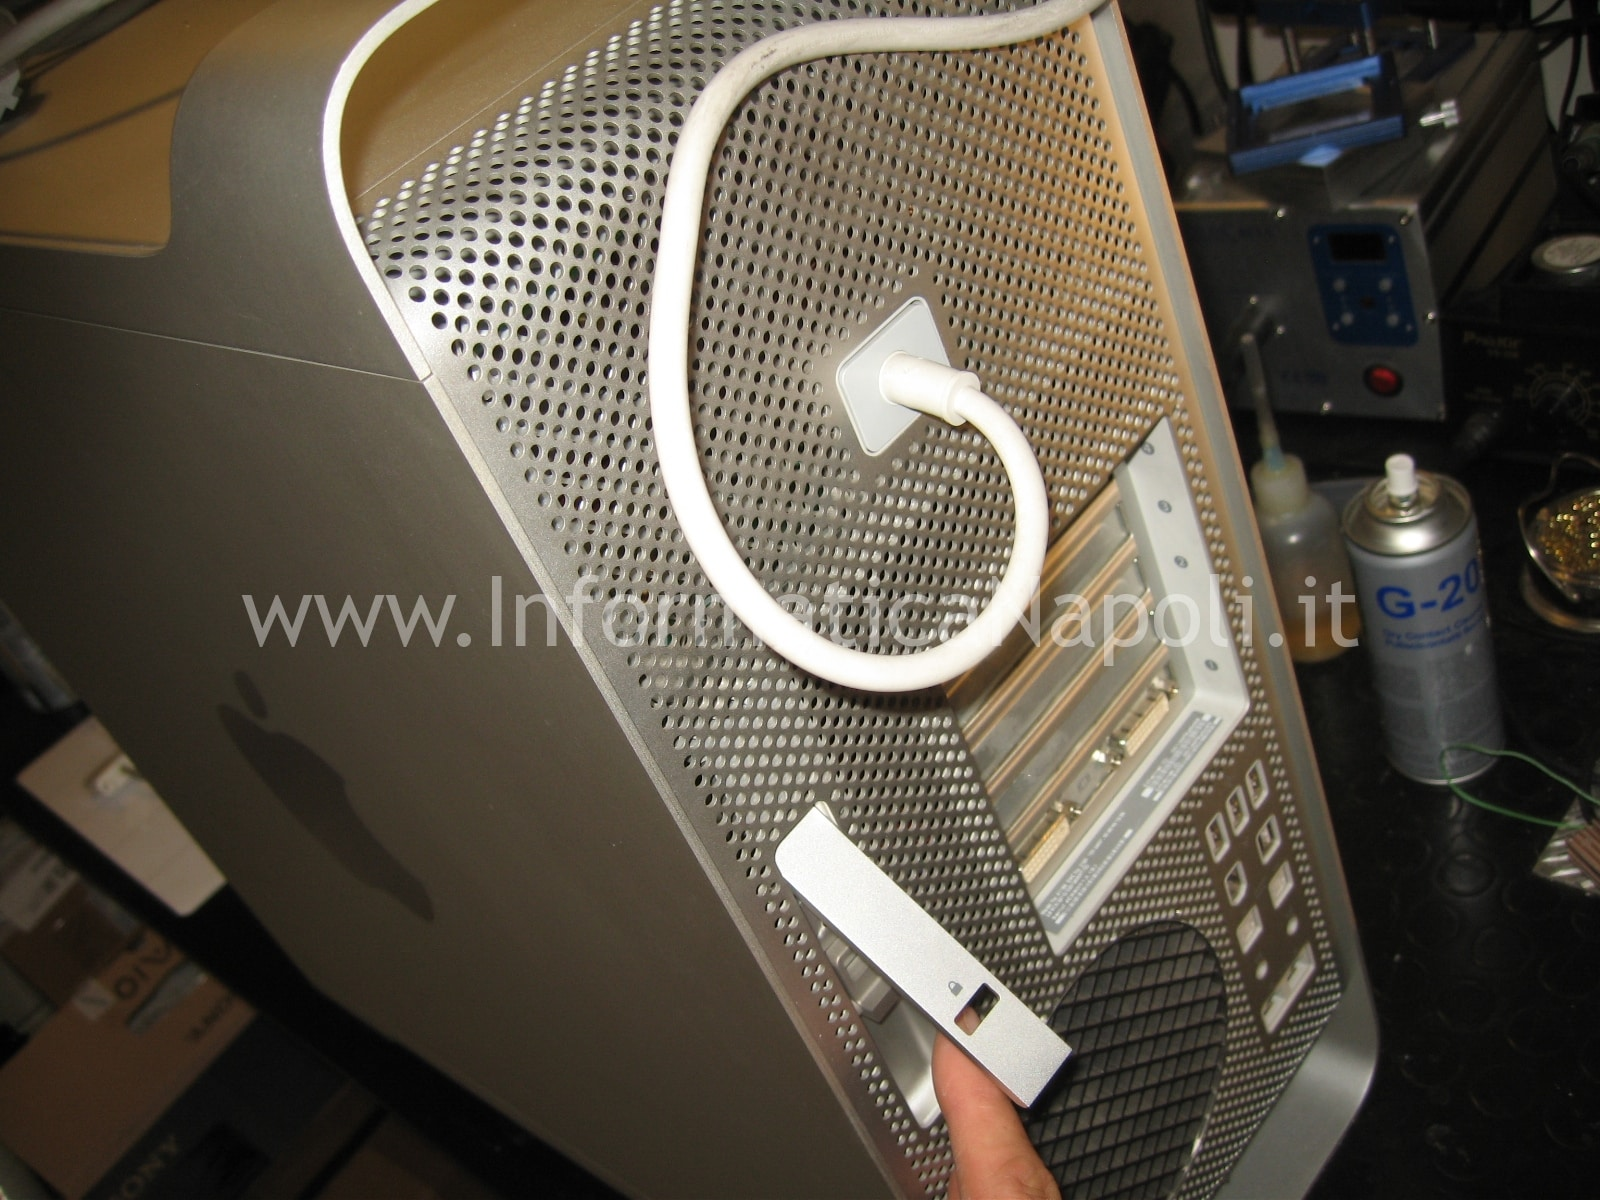 come aprire Apple Mac Pro A1186 EMC 2113